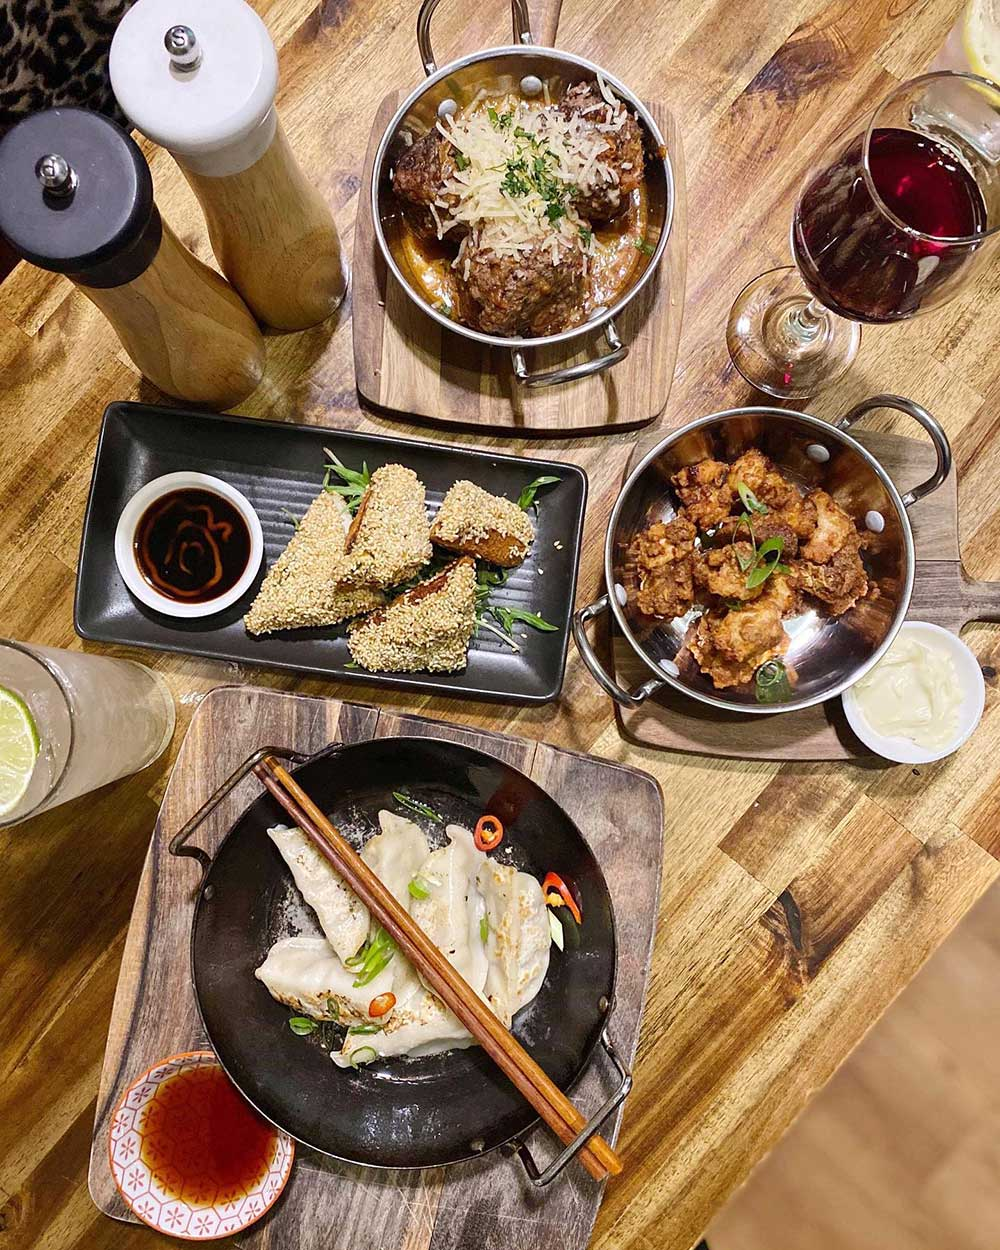 The Heritage Balnarring spread of different dishes including sesame prawn toast and dumplings